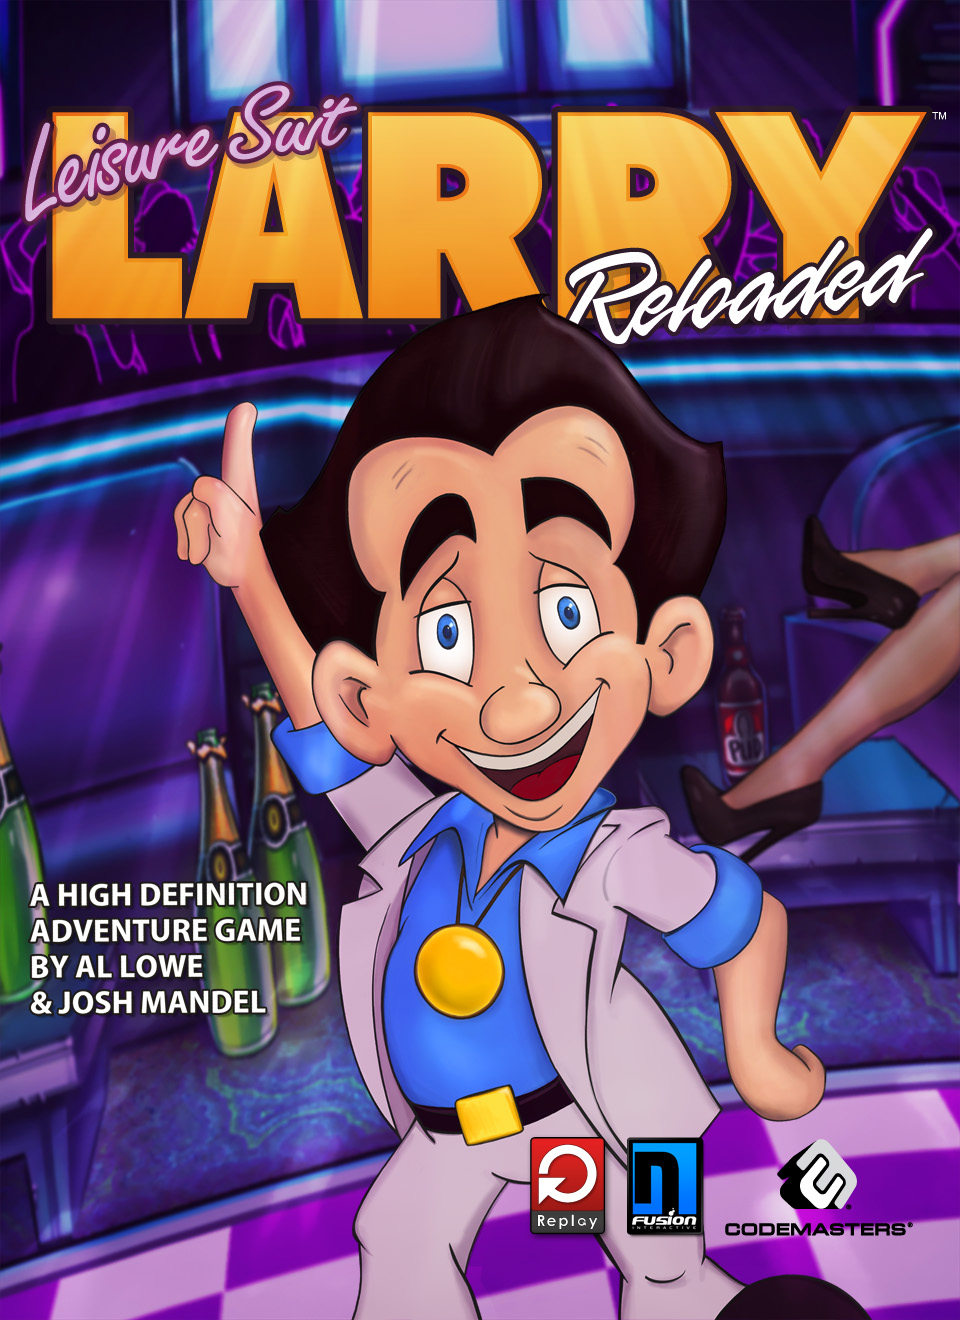 Game Leisure Suit Larry